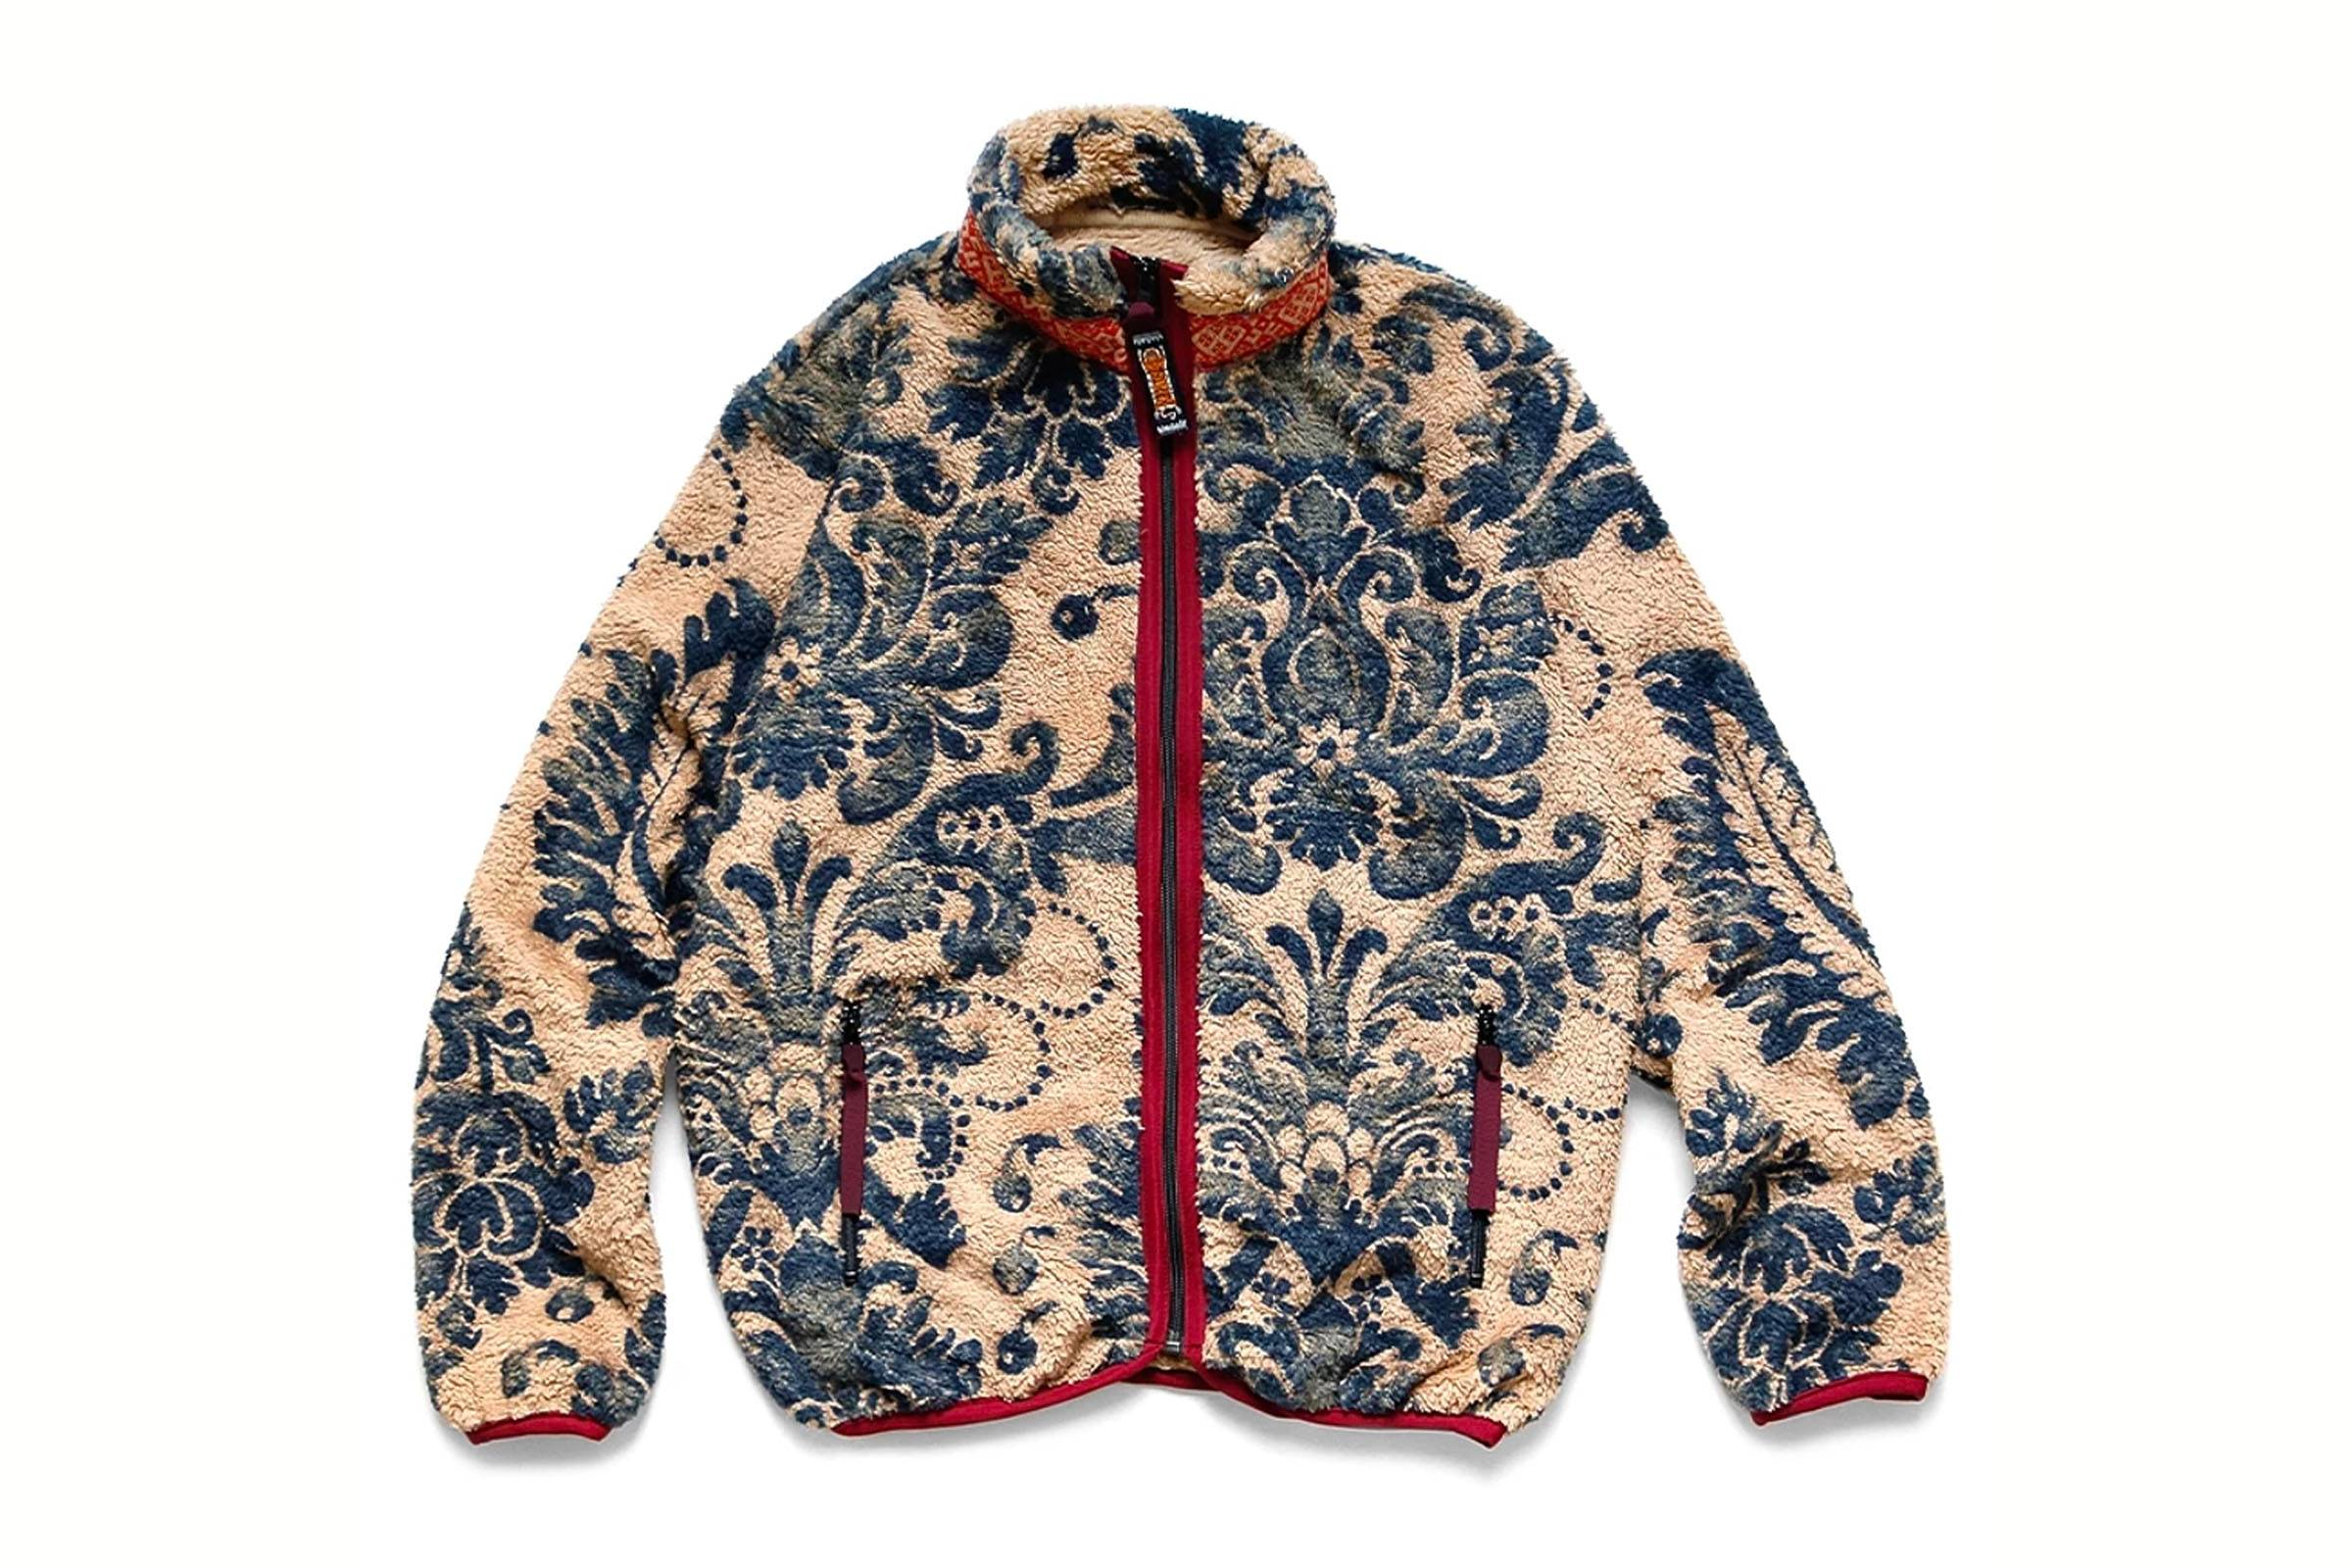 Kapital Damask Fleece Jacket